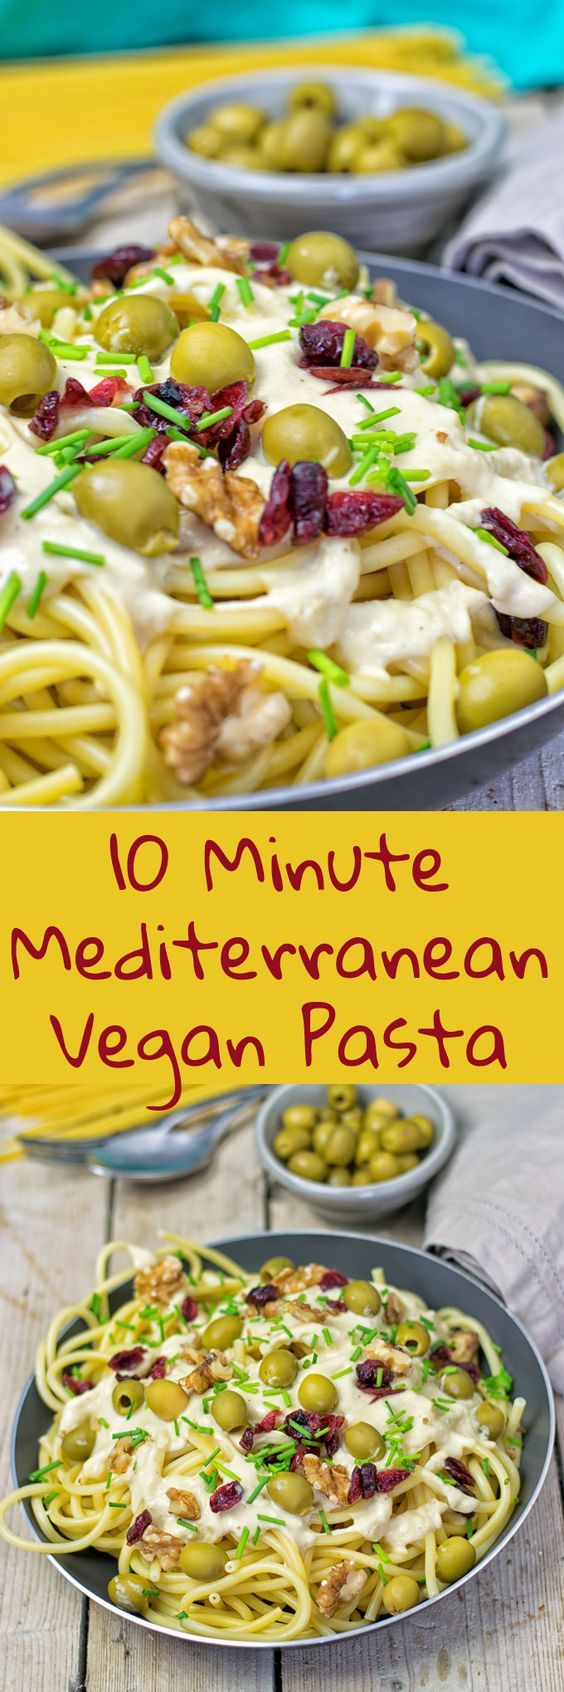 awesome 10 Minute Mediterranean Vegan Pasta